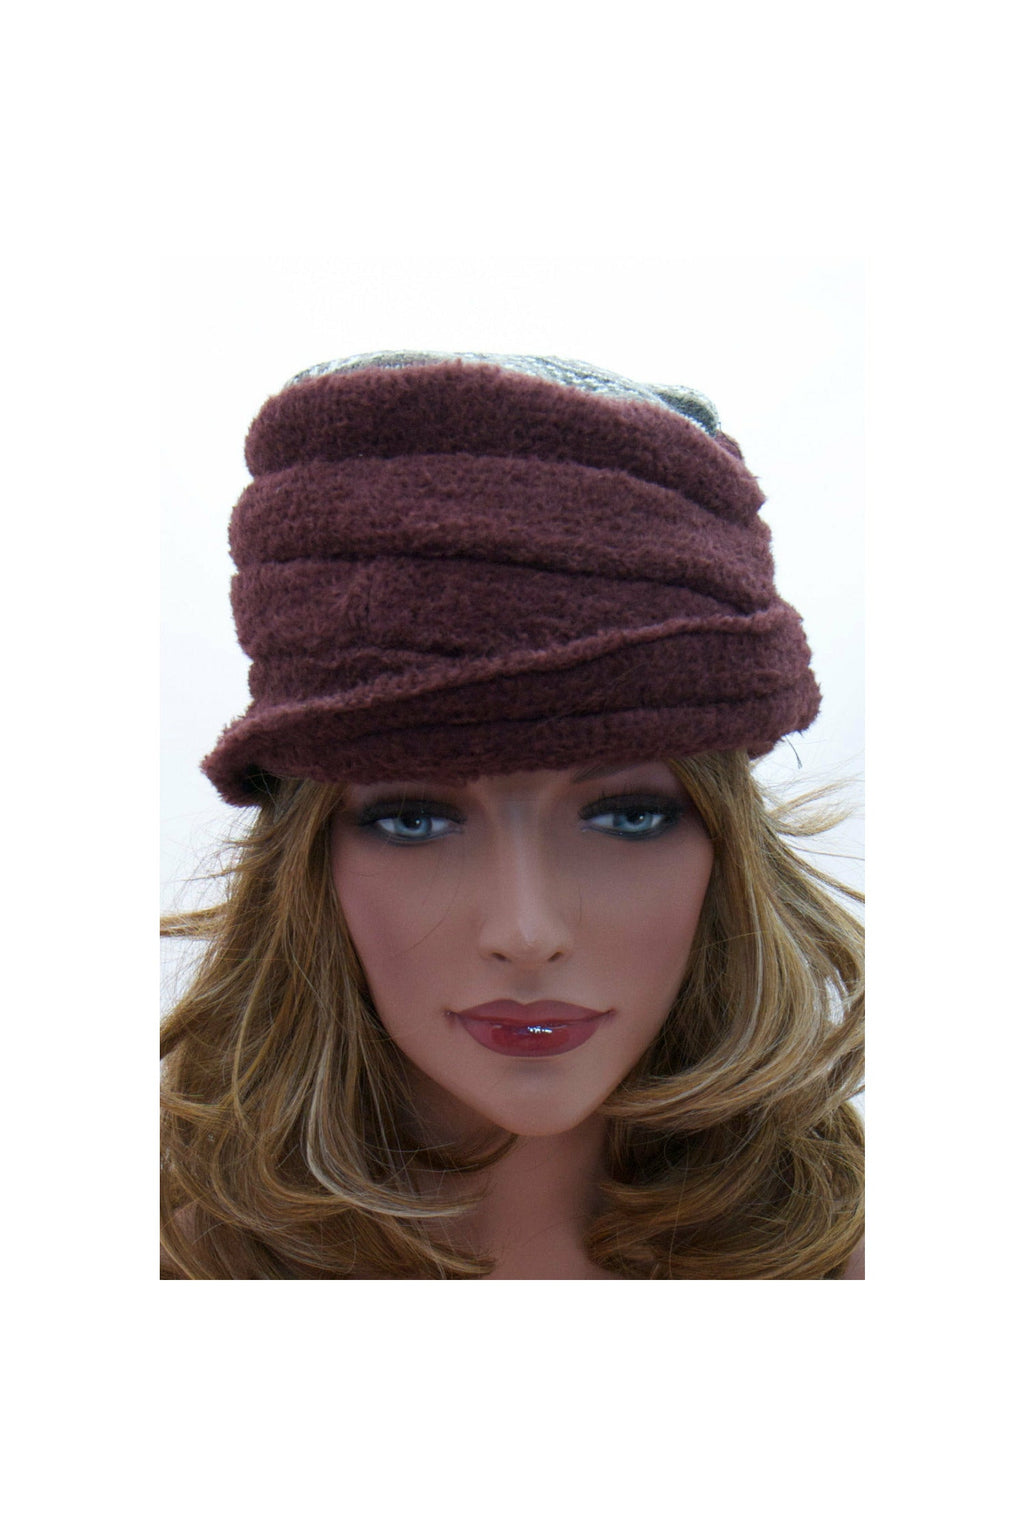 Winter hats-brown-cloche hat-beanie hats - RelovedFabrics,Hats/Chapeaus/Head Gear - accessories, [product-vendor] - Robin, [shop-name] - robin.boutique